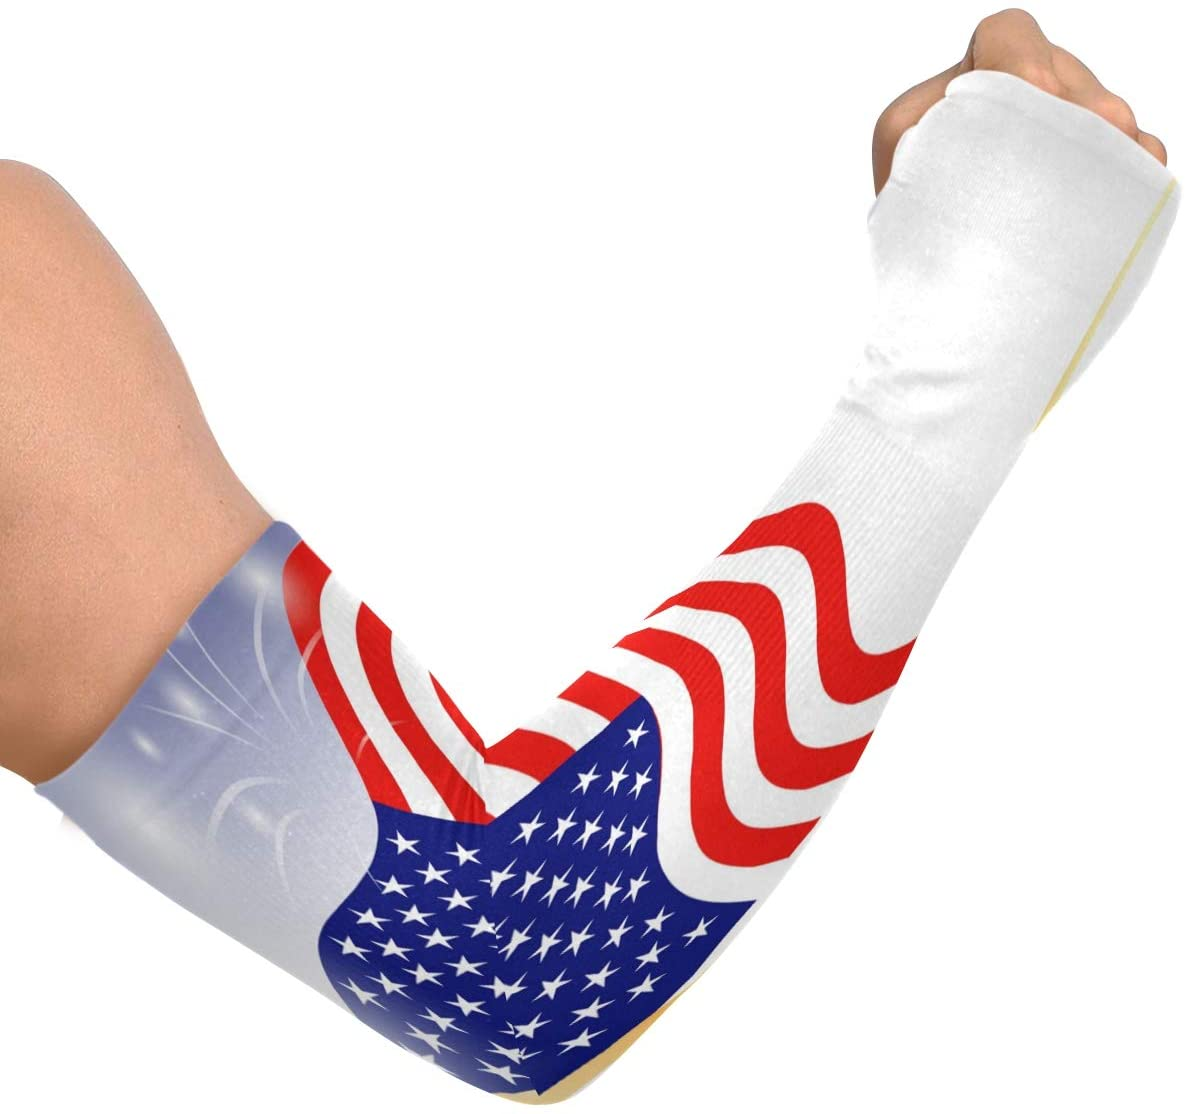 Compression Sleeves for Arms Women Men USA Flag Dark Blue Sky with Fireworks Uv Sun Protection Arm Sleeves Cooling Sleeves to Cover Arms for Men Women Work